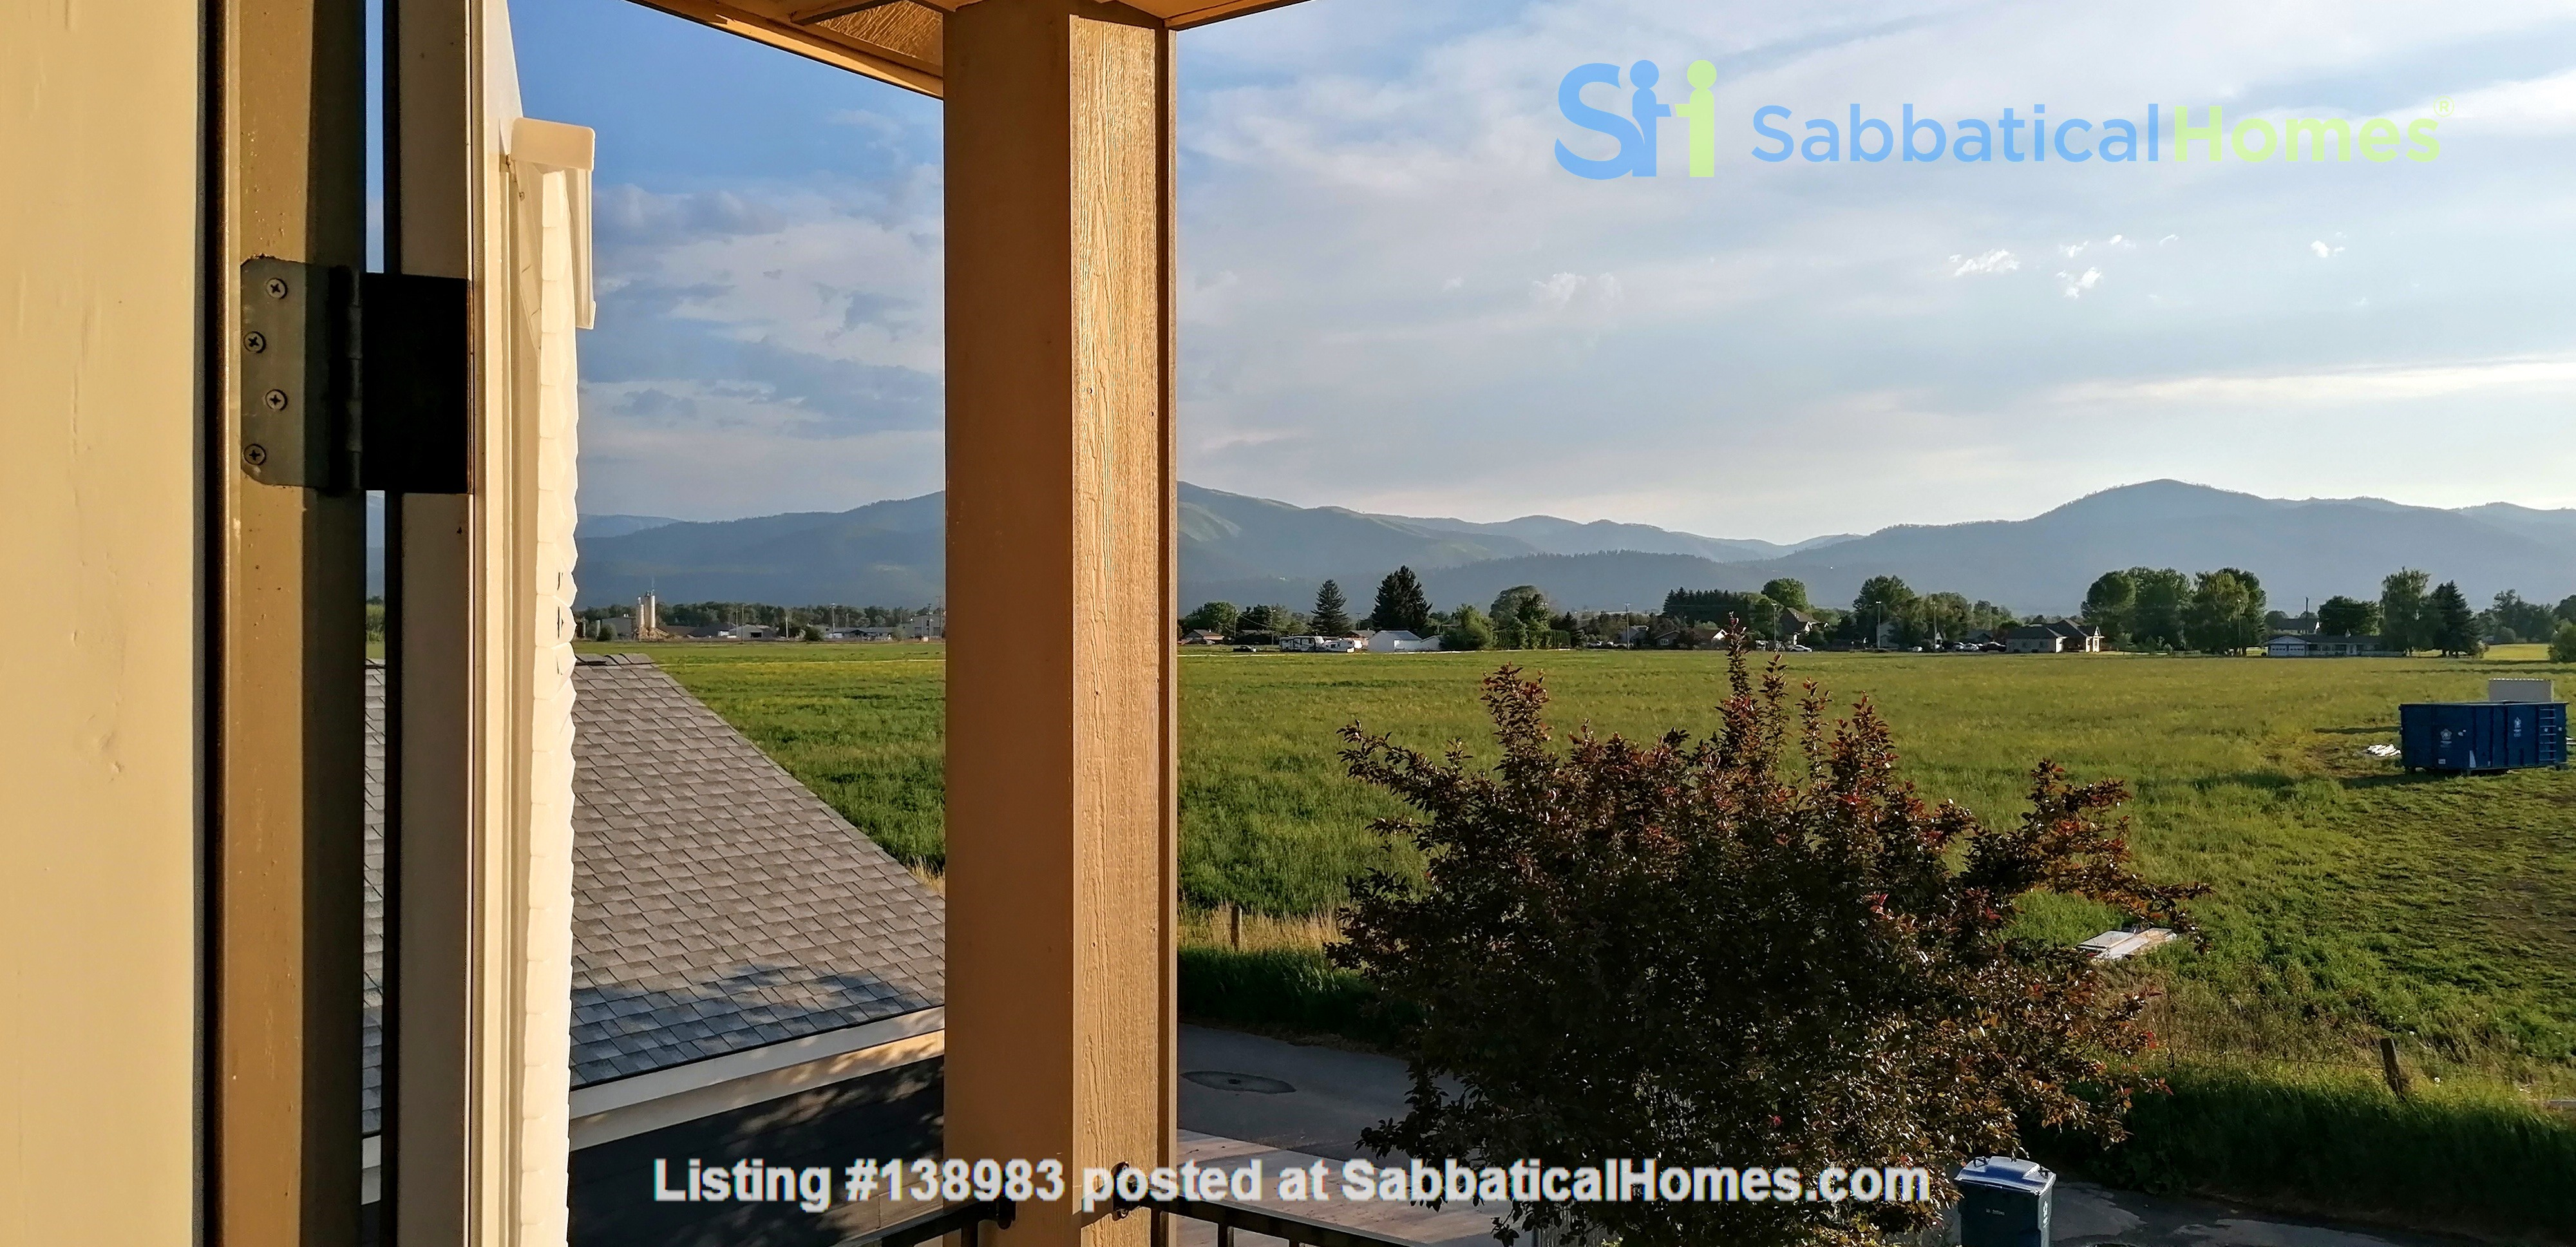 Spacious one bedroom/studio  apartment in Missoula, MT Home Rental in Missoula, Montana, United States 1